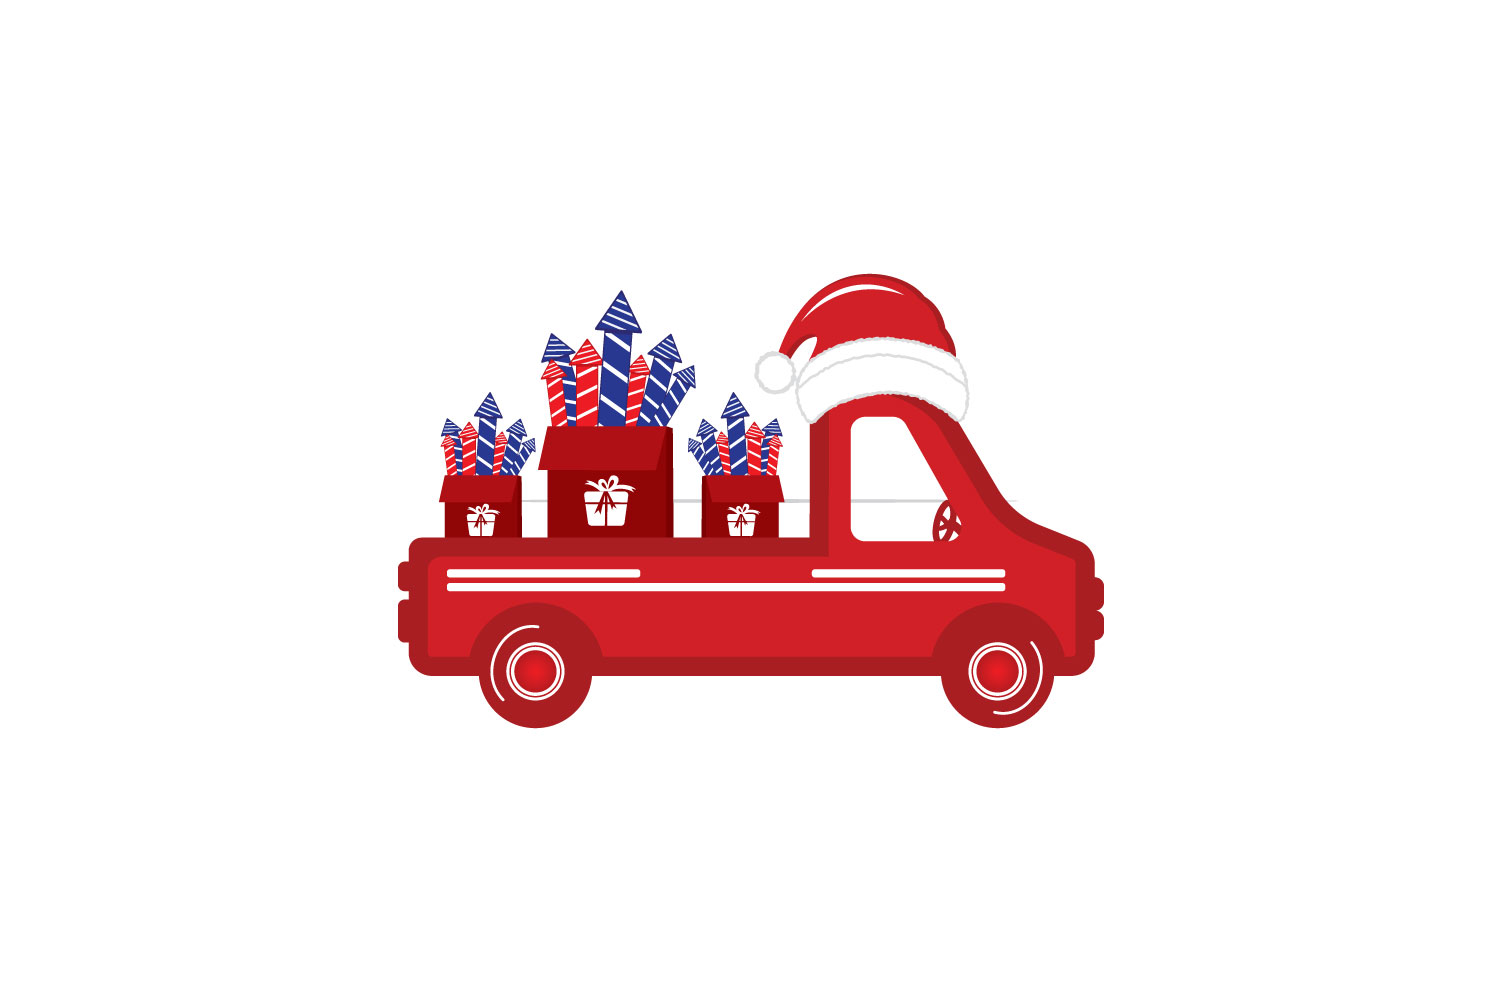 Old vintage red Christmas truck with fireworks and Santa hat example image 2